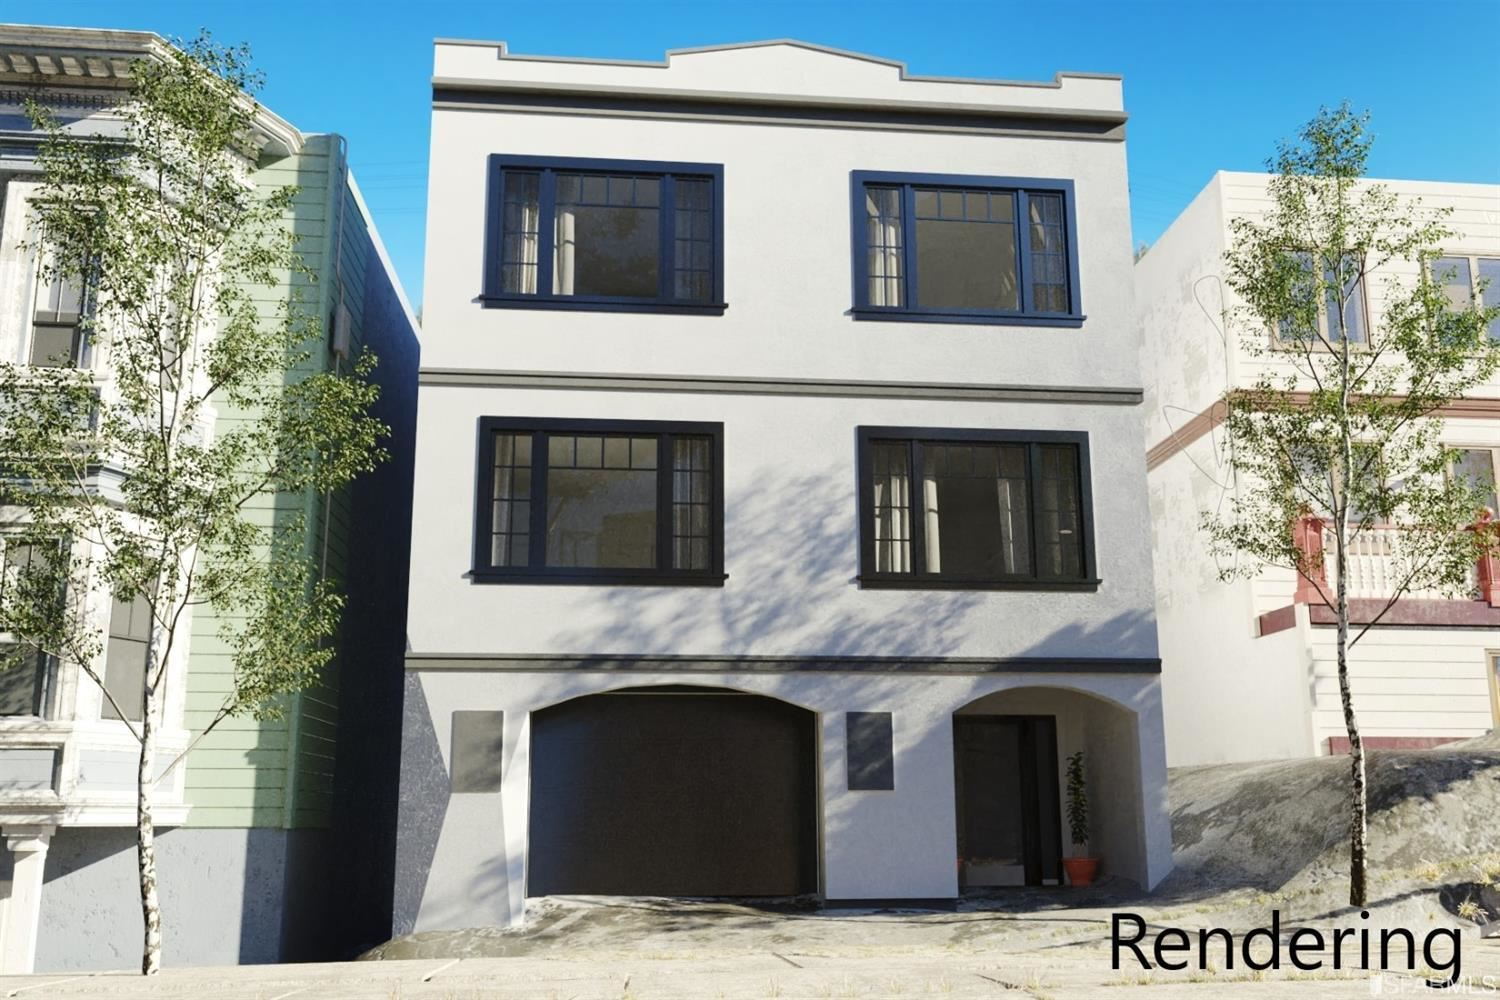 1132 1134 Sanchez Street #2 Units, San Francisco, CA 94114 - #: 503150